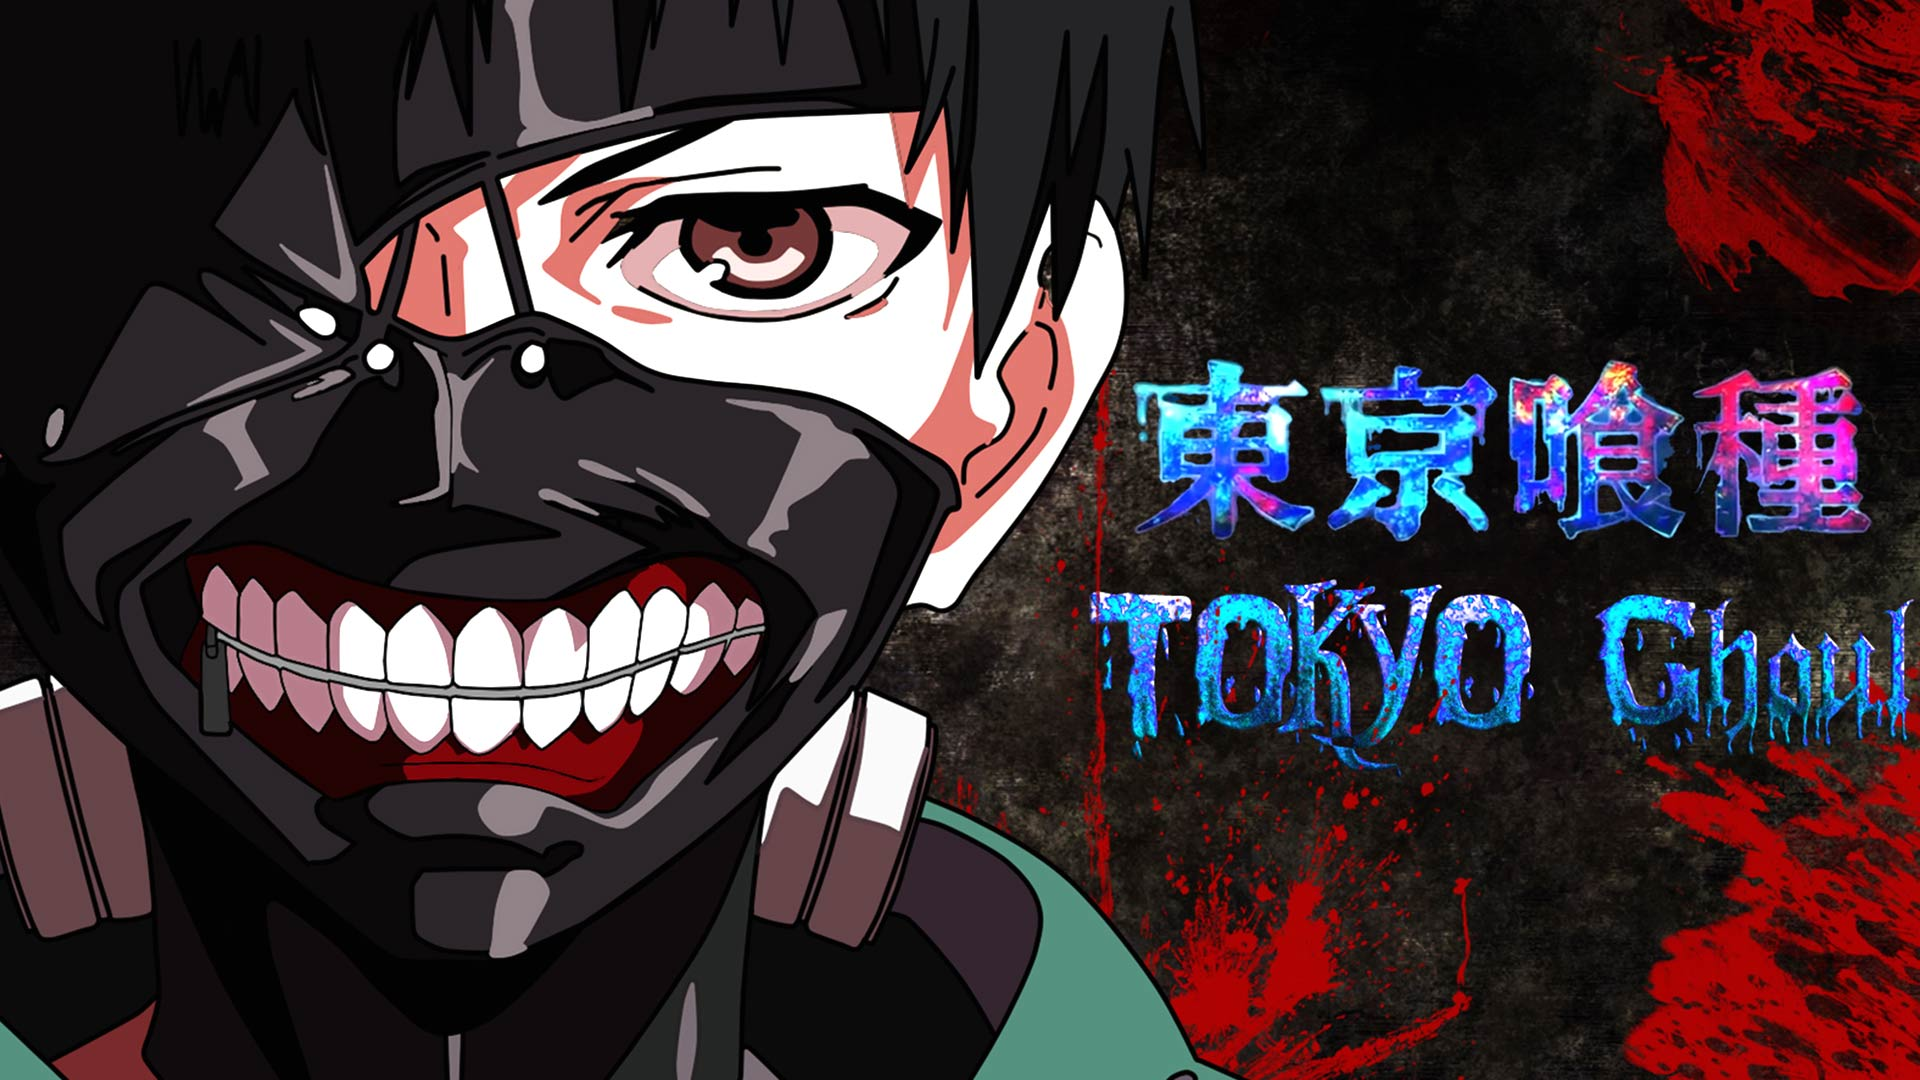 Tokyo Ghoul wallpapers full hd wallpapers for 1080p desktop 1920x1080